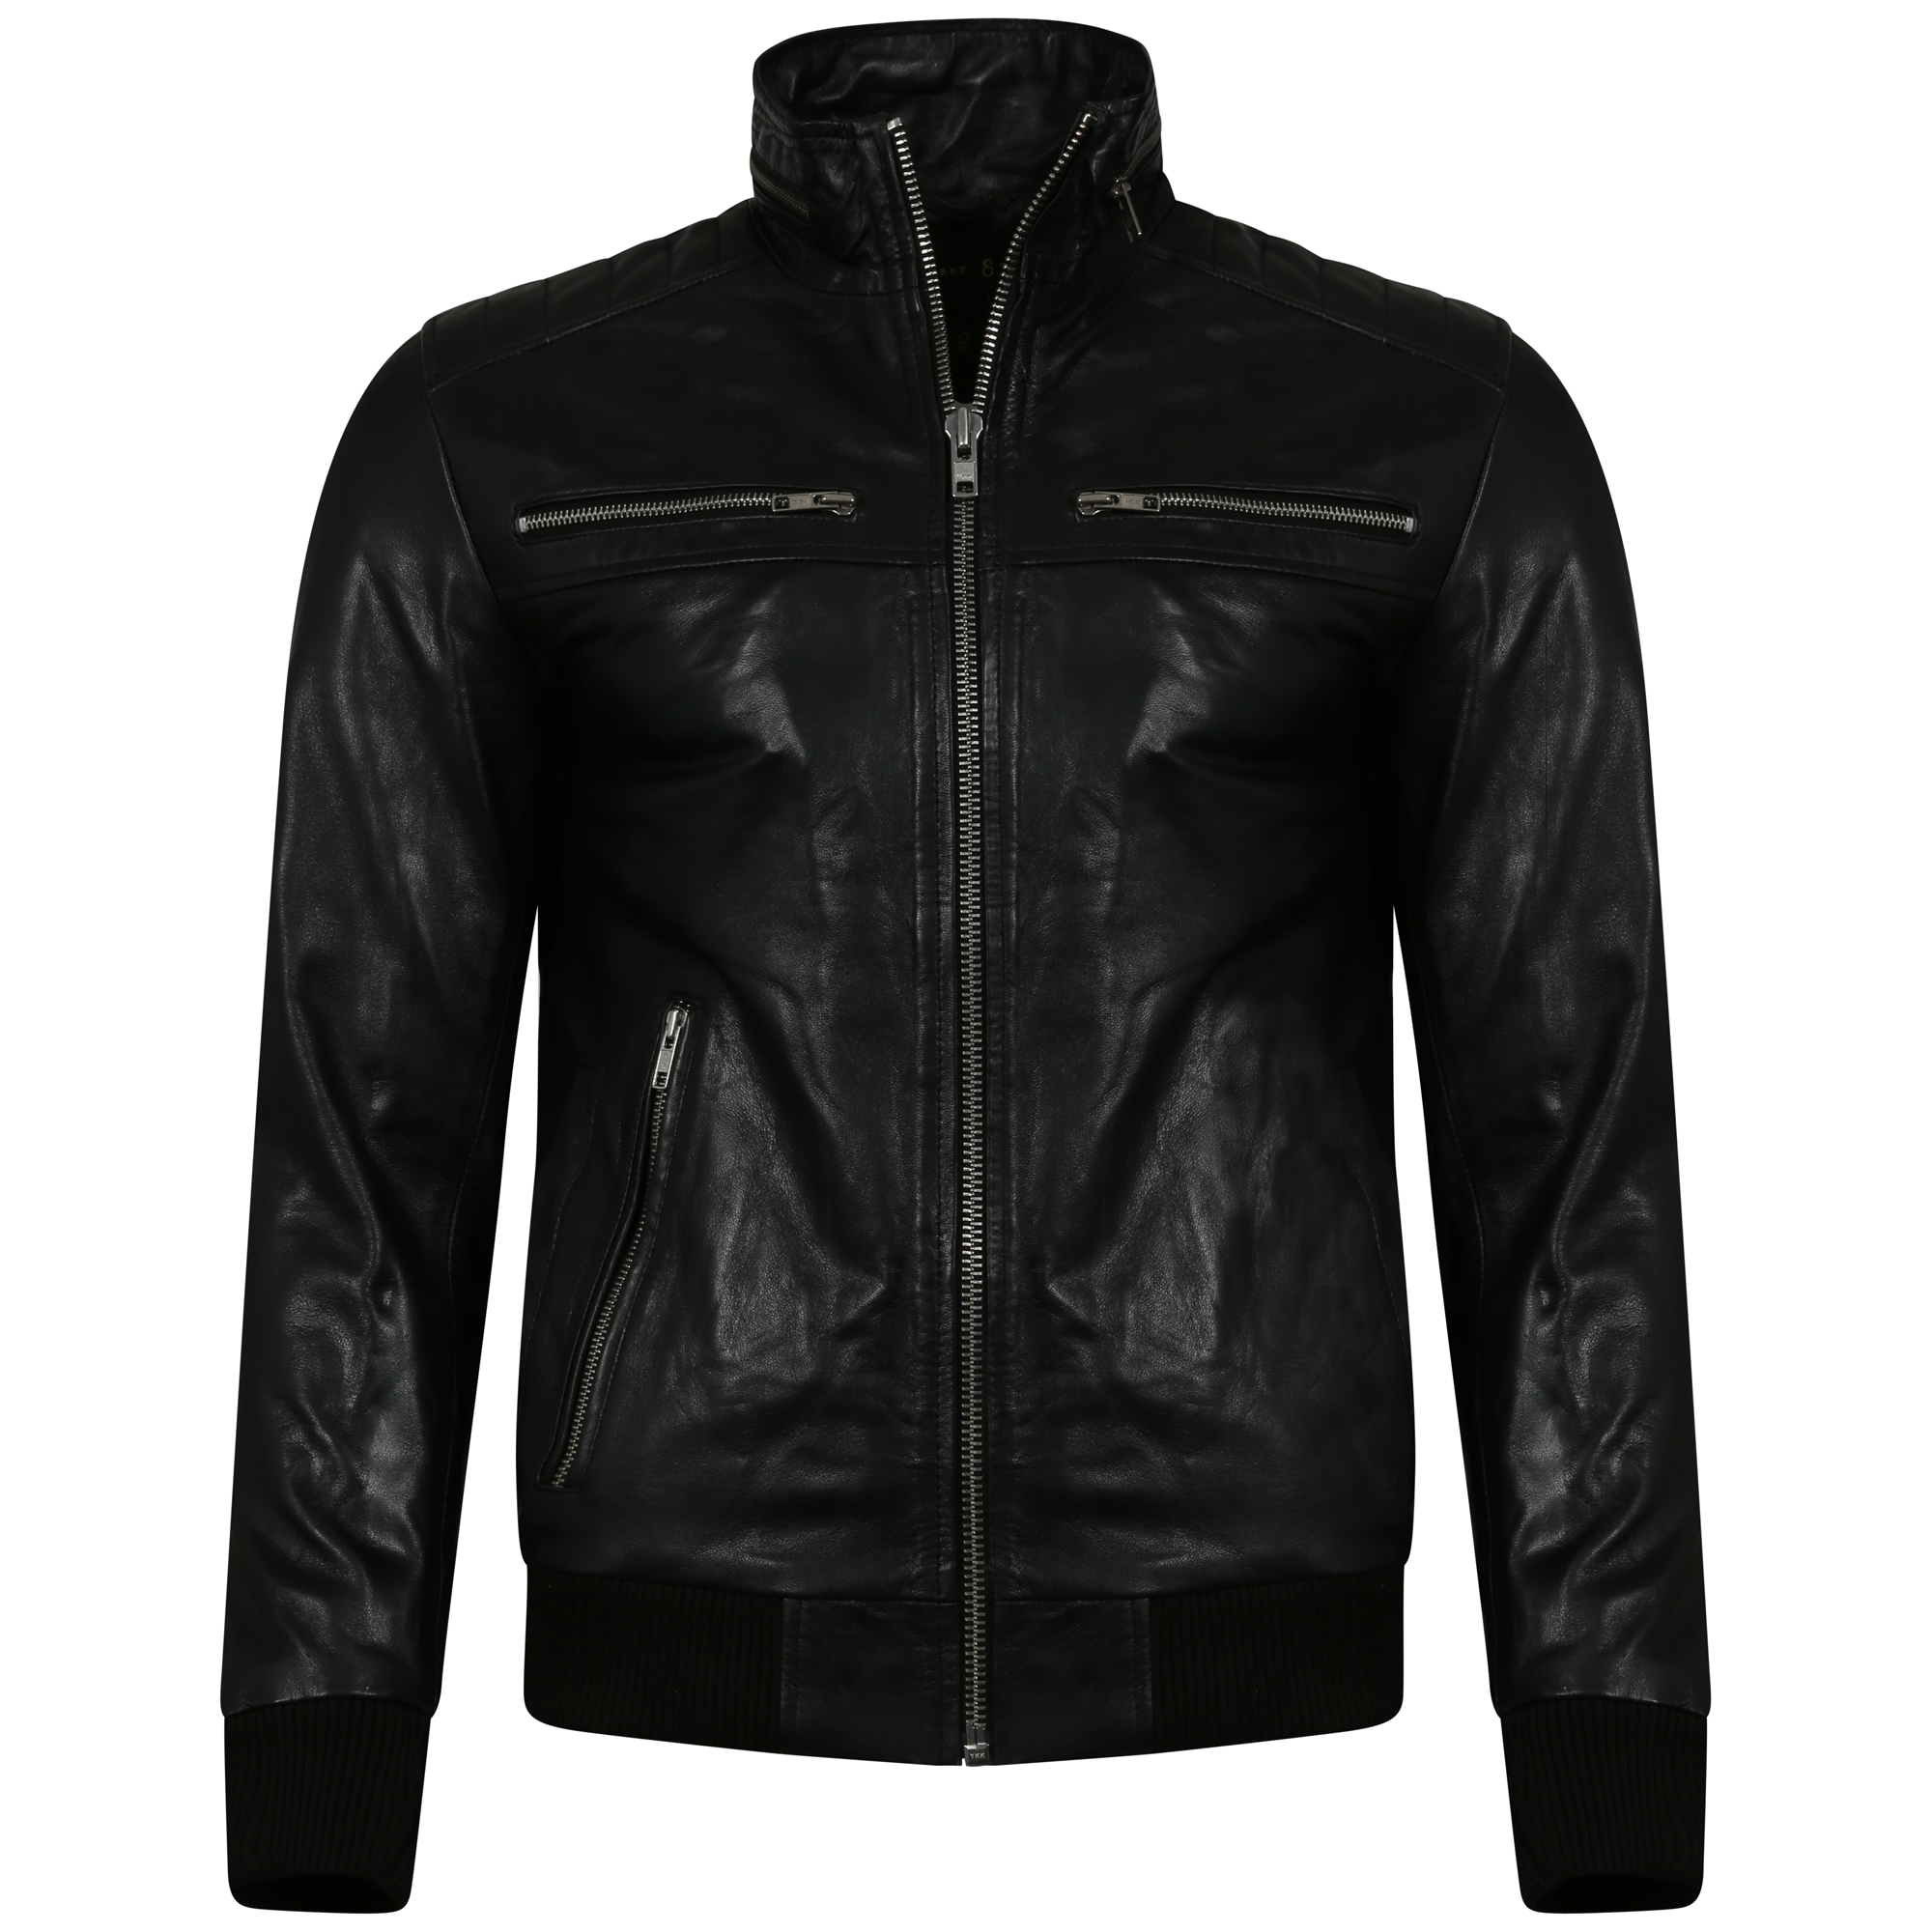 BRANDED Barney & Taylor Leather Jackets - Mixed Styles and Sizes